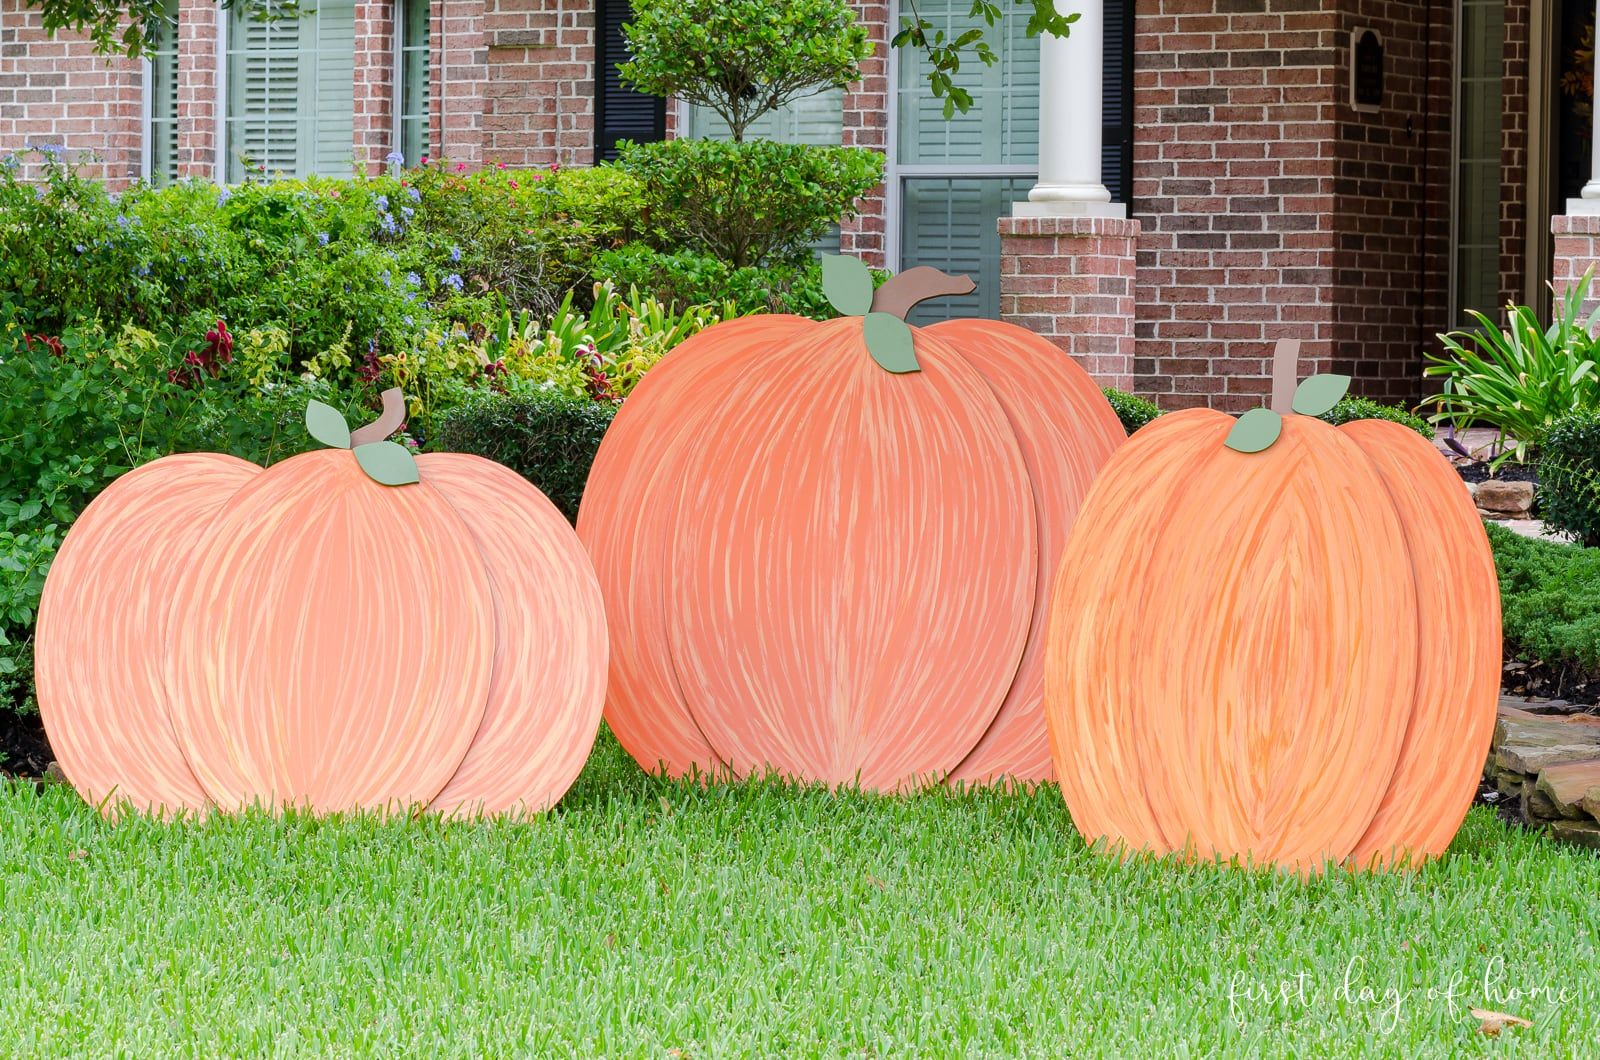 Want To Learn How To Make Wooden Pumpkins Read On Wooden Pumpkins Wooden Yard Decorations Wood Yard Art